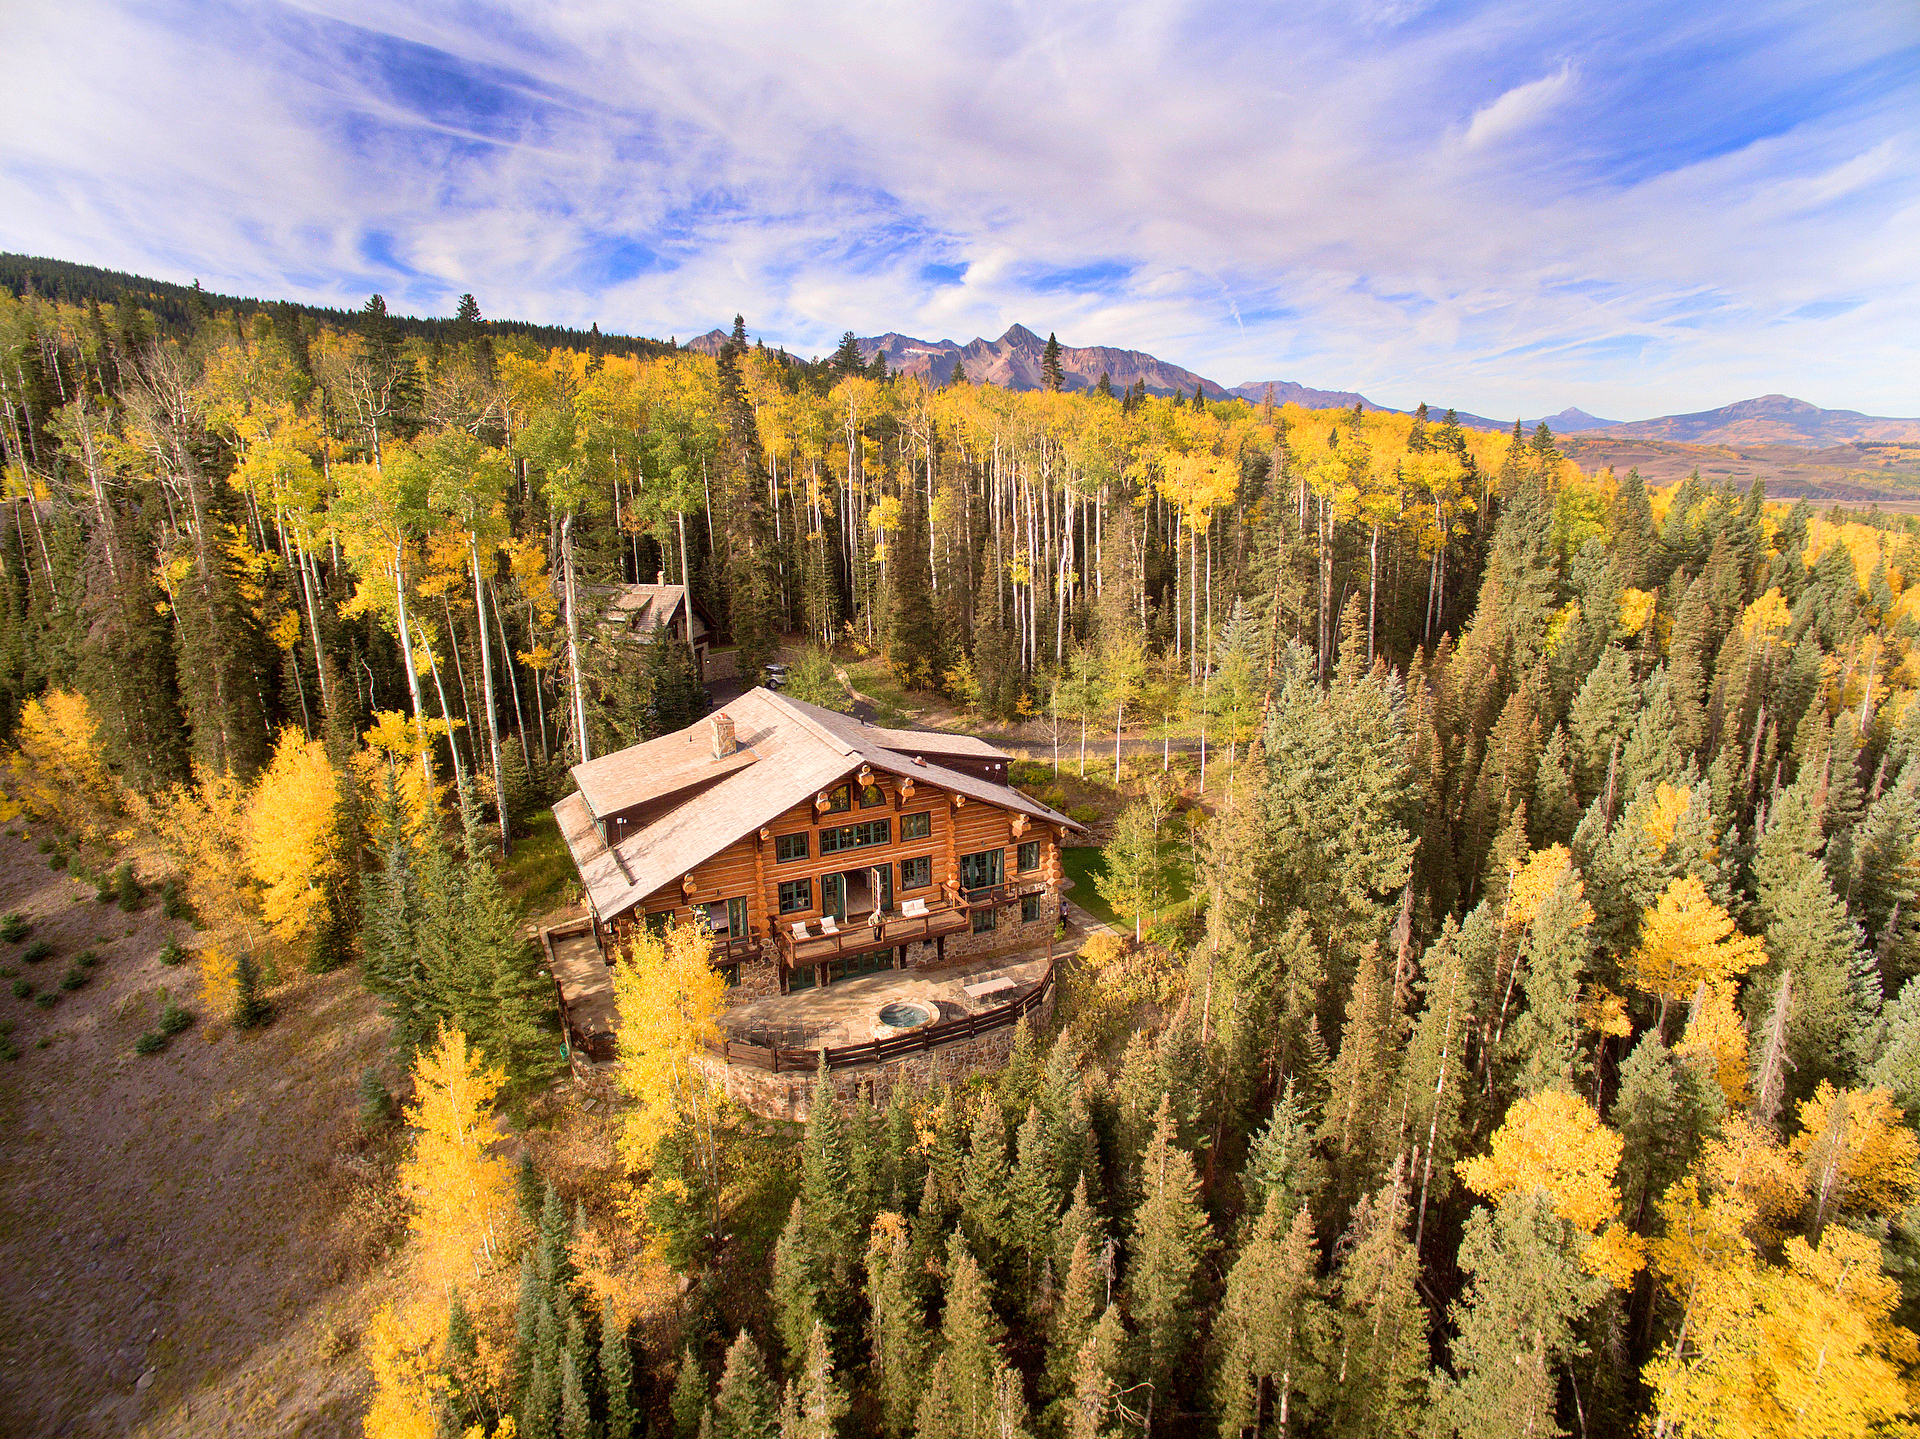 Single Family Home for Sale at European Style Estate, 427 Benchmark 427 Benchmark Drive Mountain Village Mountain Village, Telluride, Colorado 81435 United States